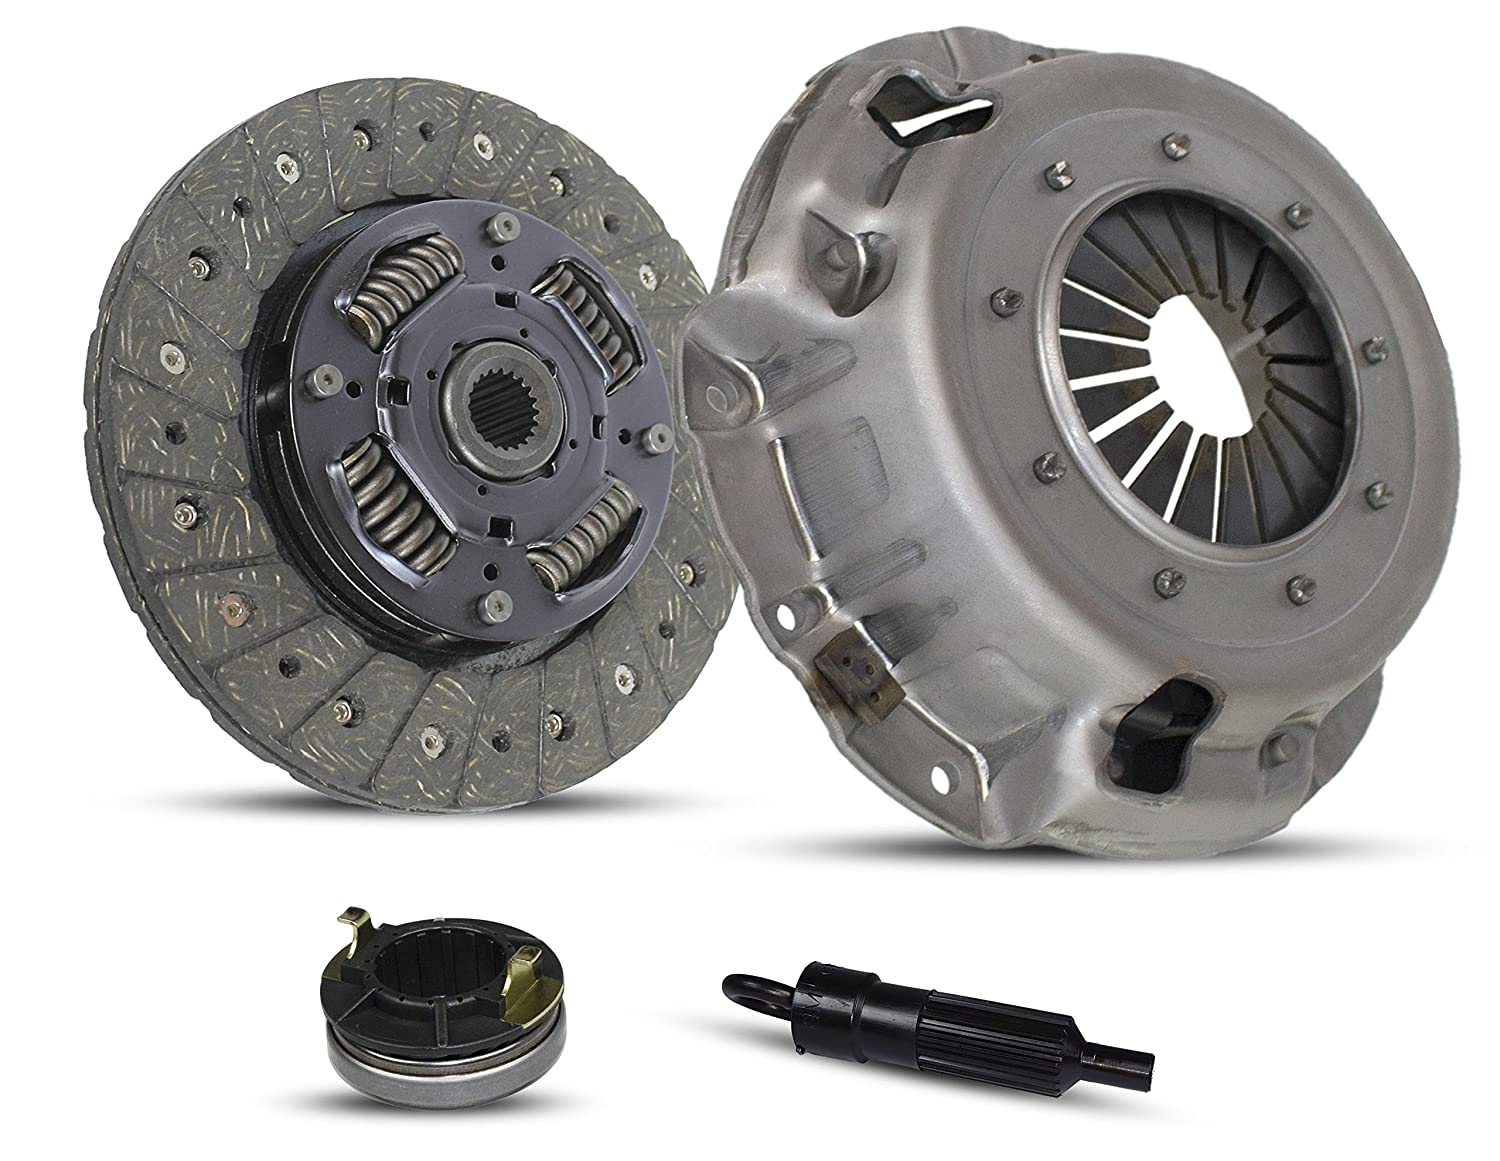 Clutch Kit Works With Hyundai Accent L Gl Gs Gsi Base Gt 1995-2002 1.5L l4 GAS SOHC Naturally Aspirated